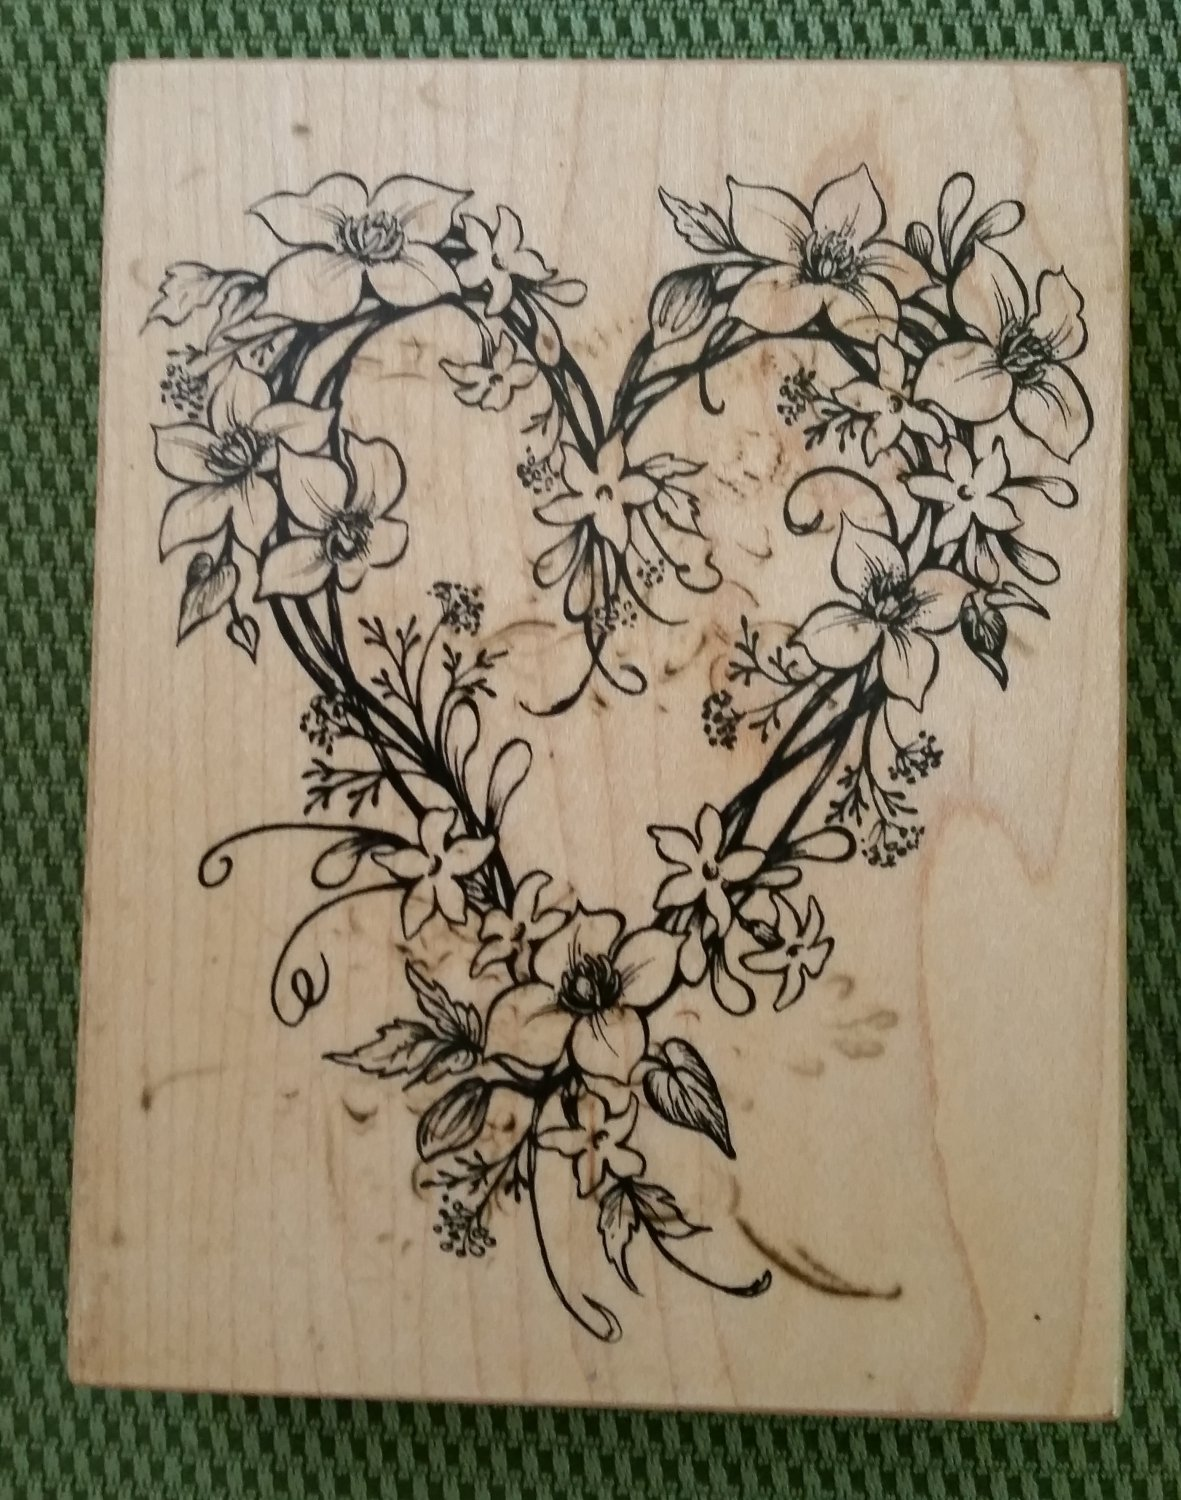 Clematis & Jasmine Flower Heart Rubber Stamp #K-2221 by PSX from 1997 - MADE IN USA - RETIRED - NEW!